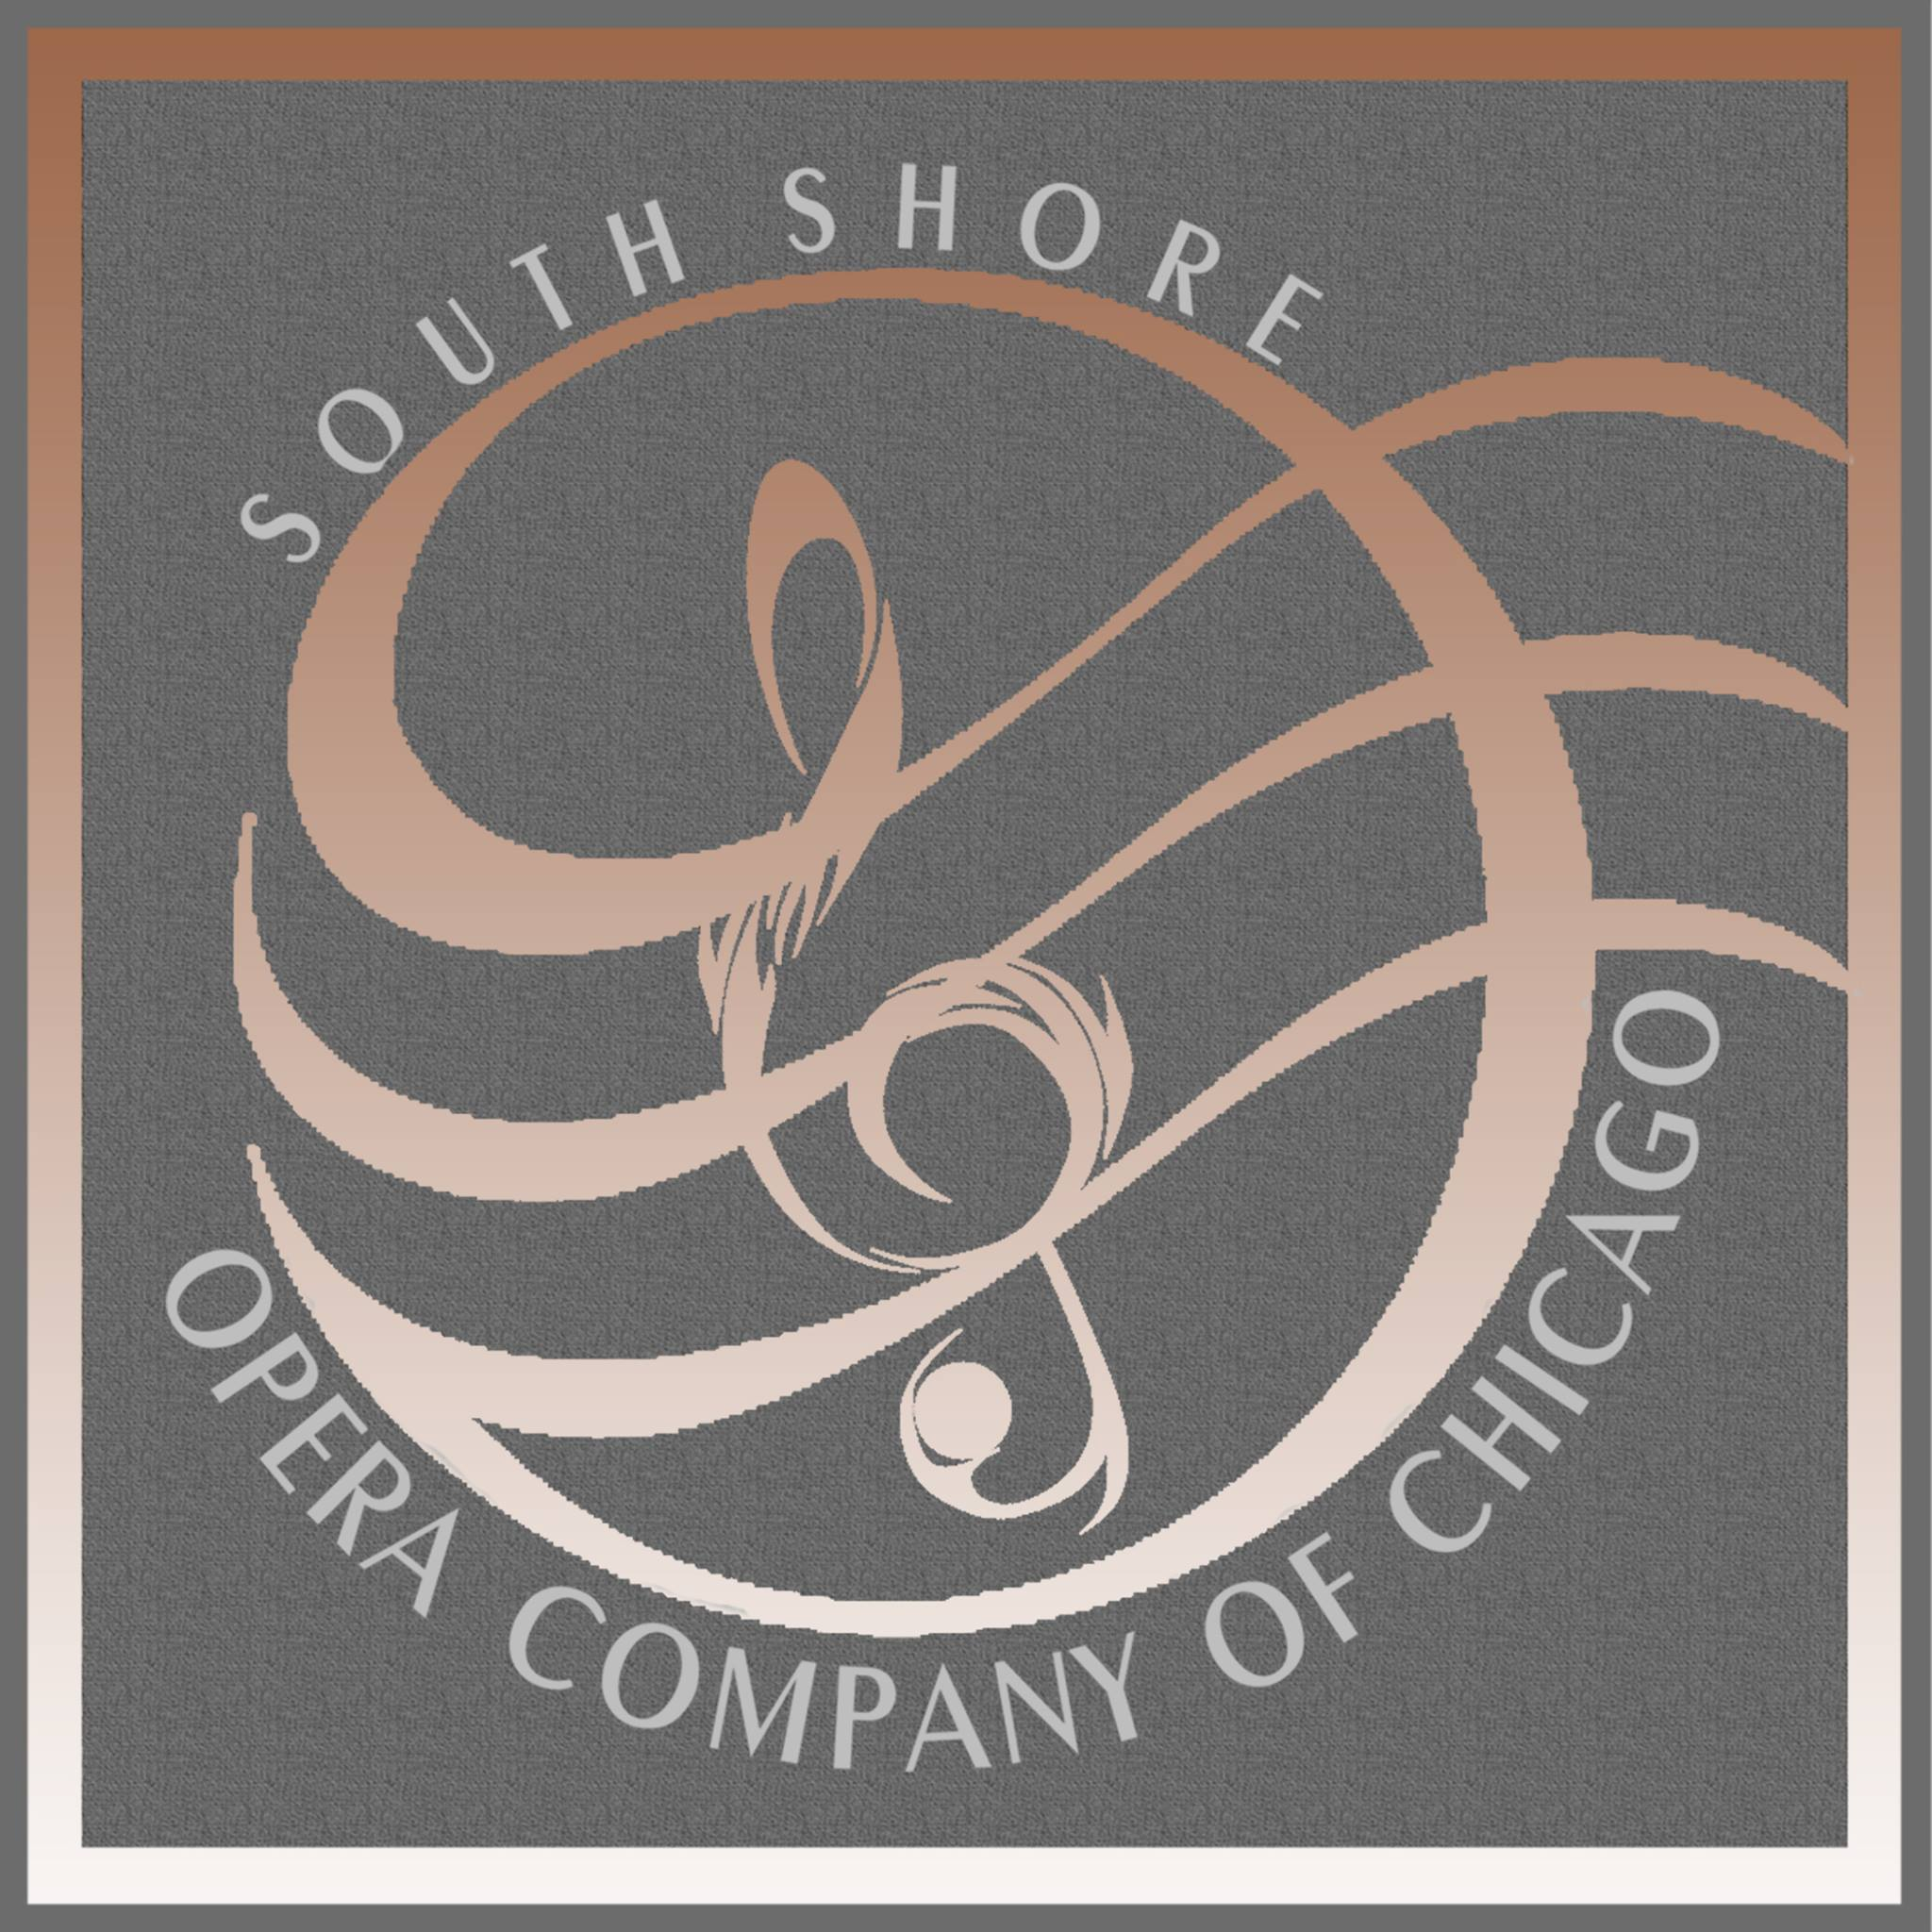 South Shore Opera Company of Chicago